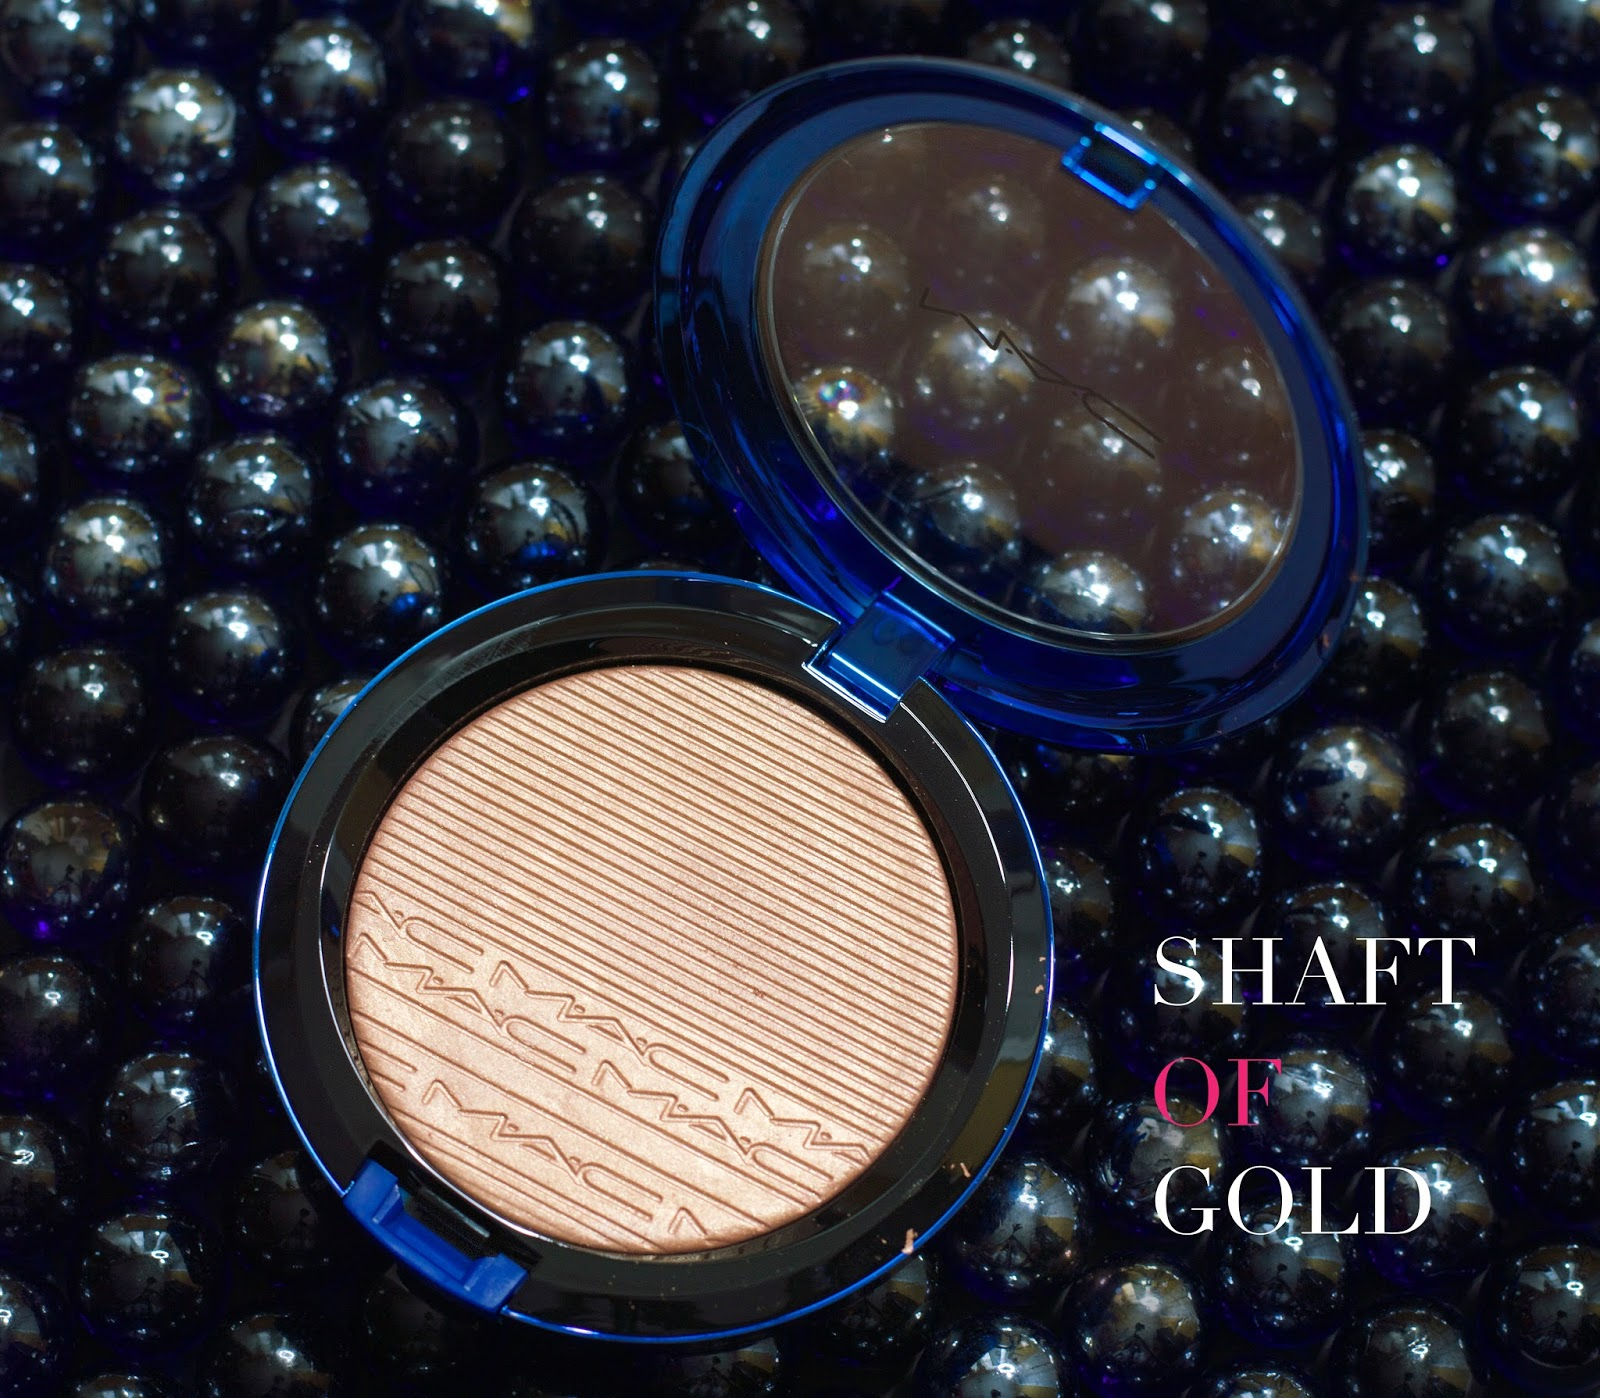 MAC Shaft of Gold